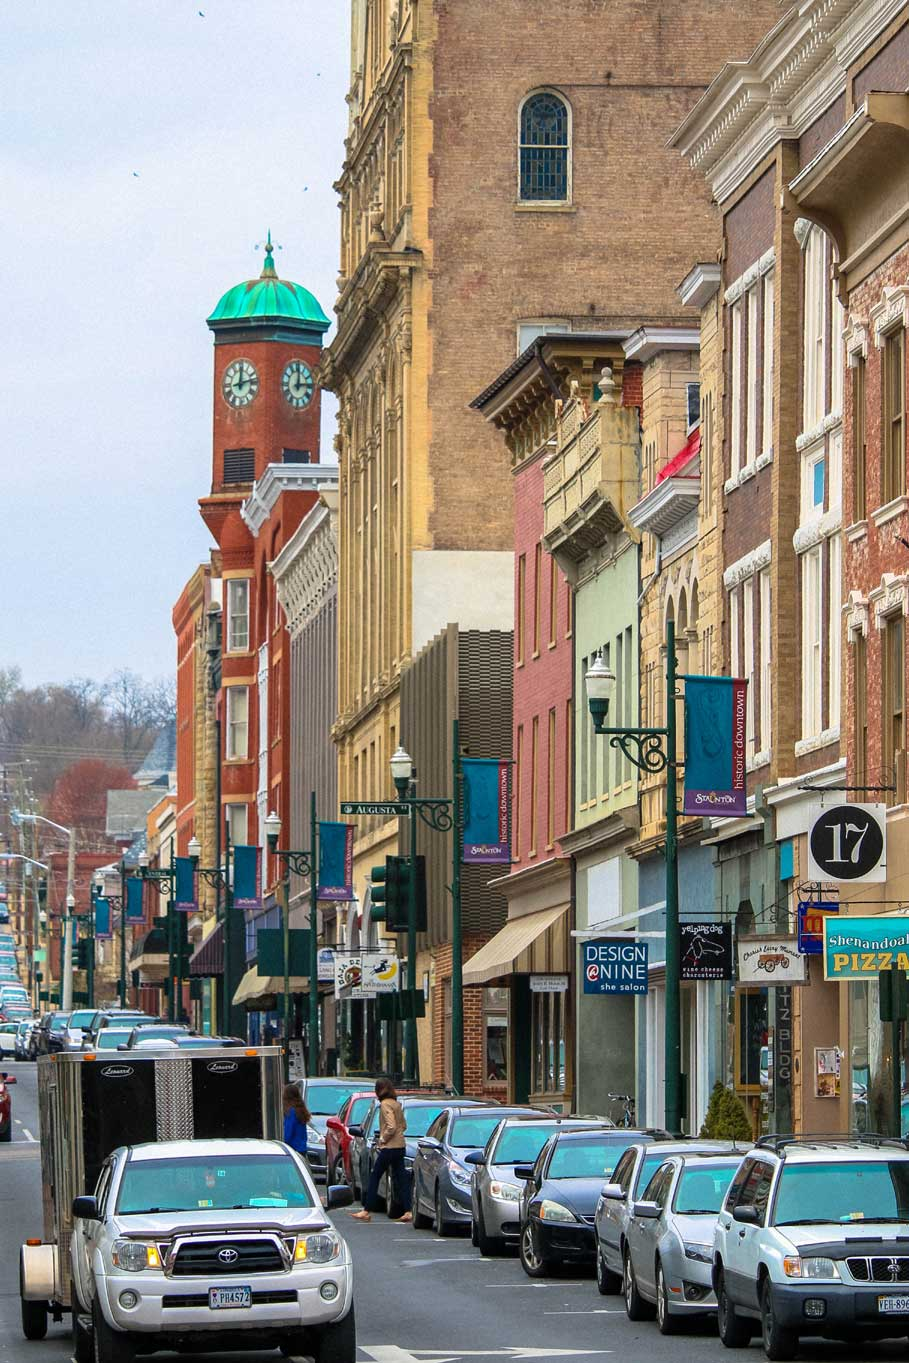 downtown businesses and clocktower in Staunton, VA